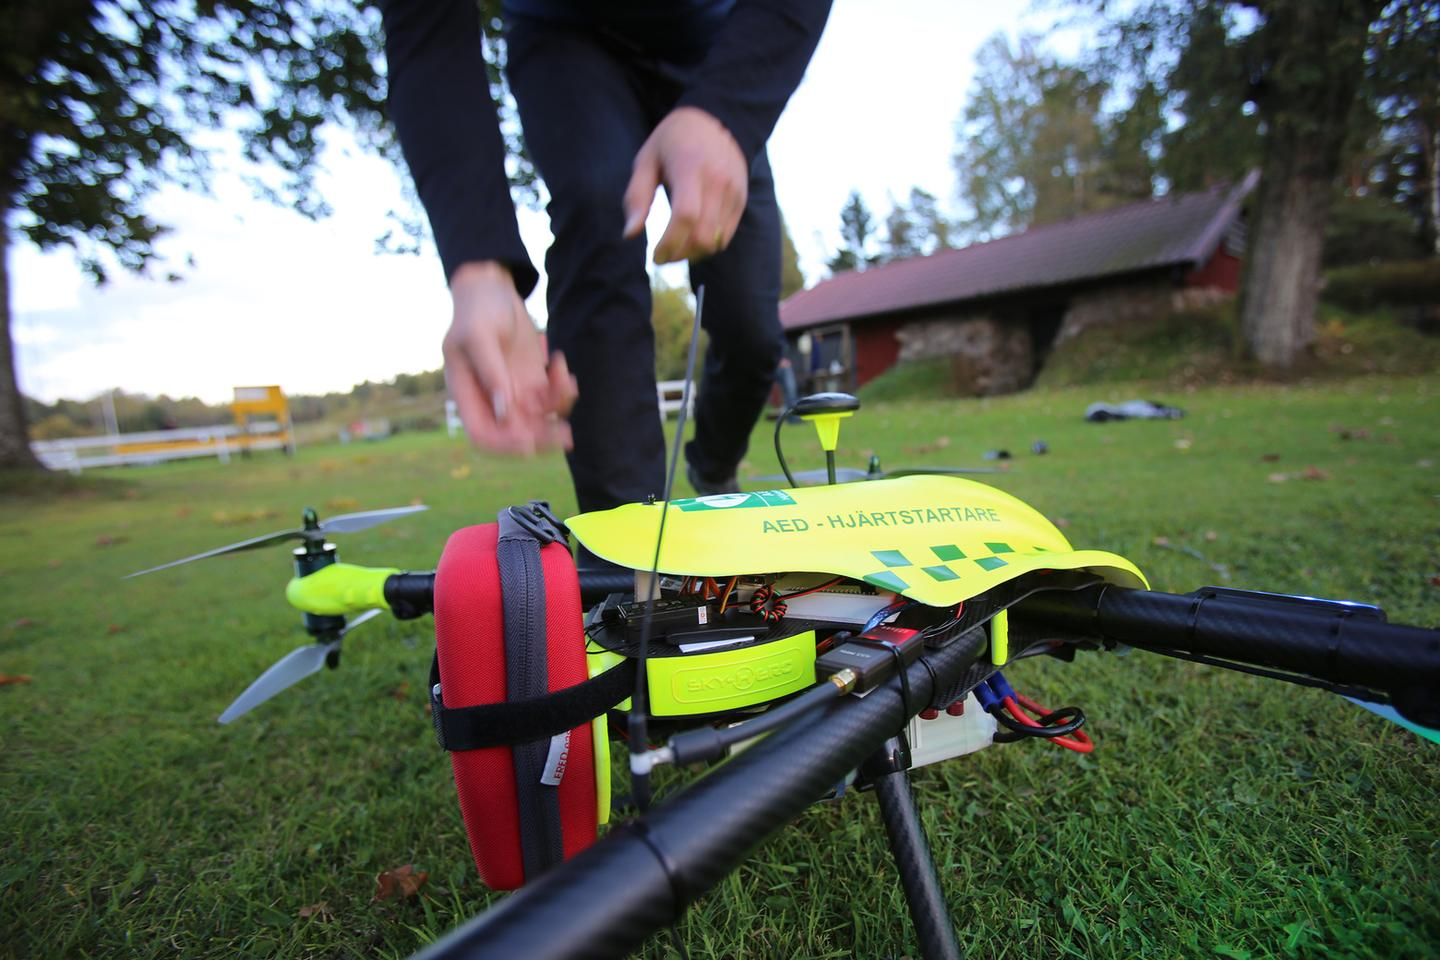 The drone system developed by FlyPulse to transport an emergency defibrillator